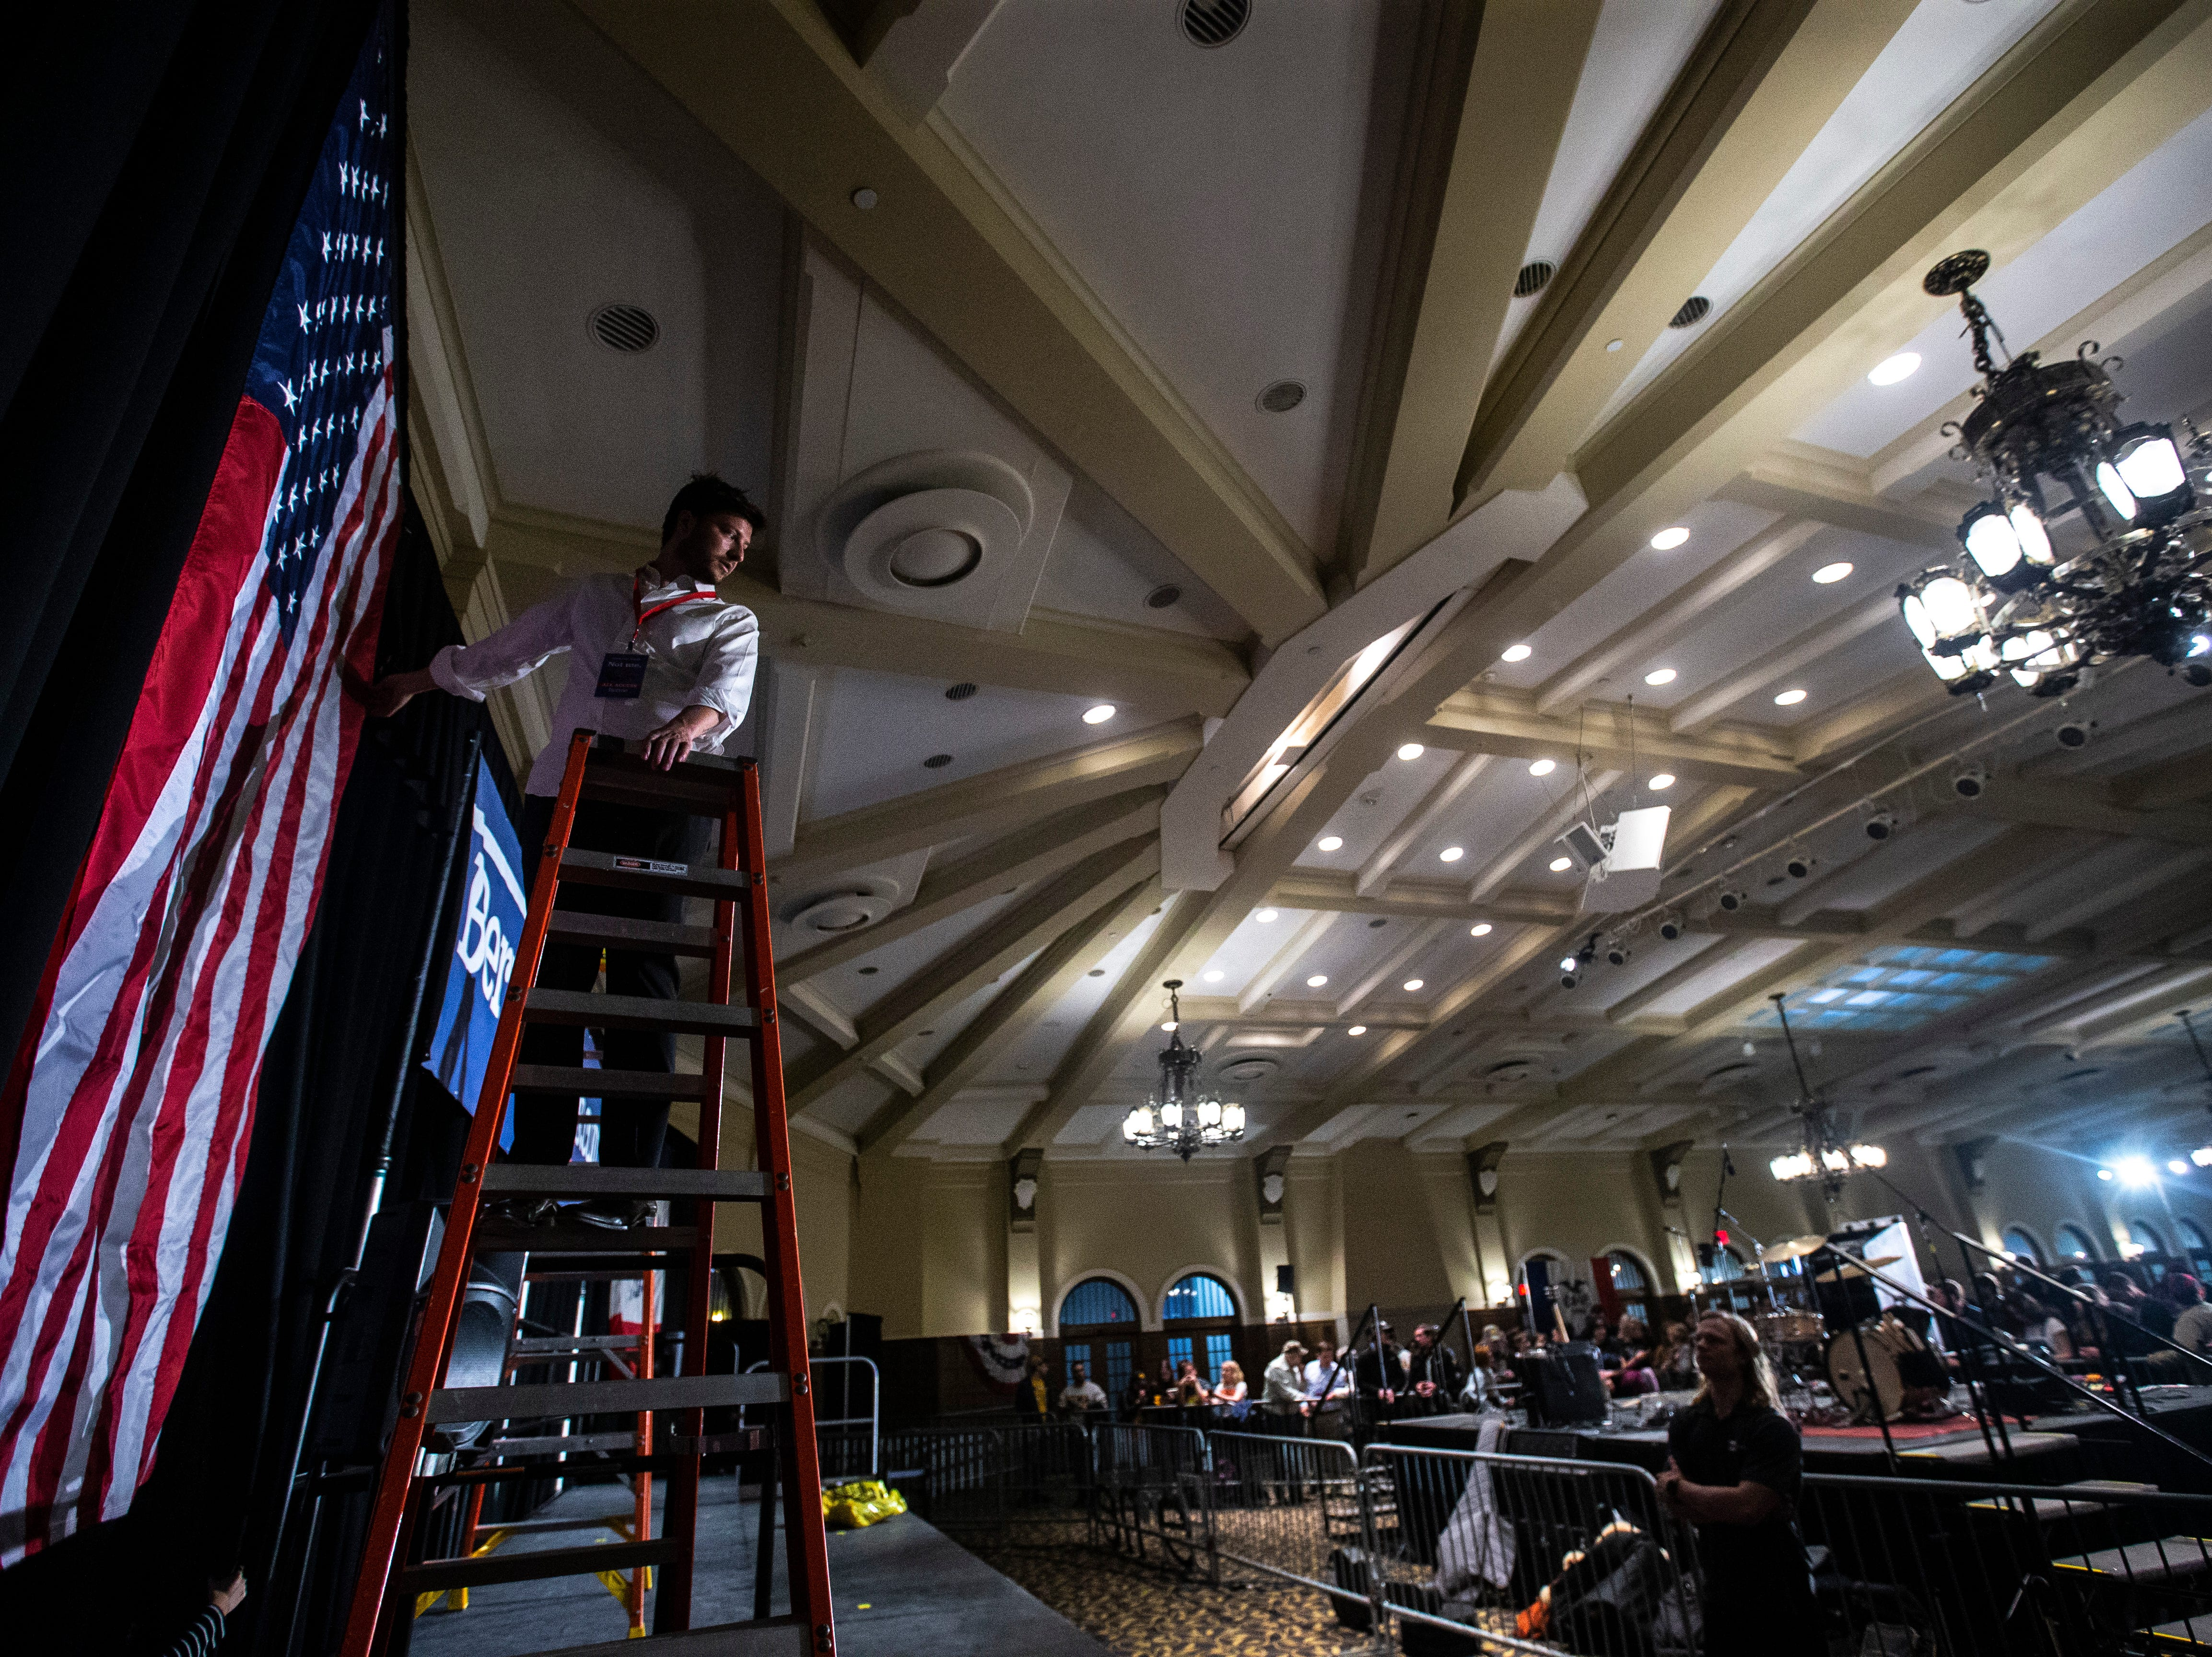 Staff adjust an American flag before U.S. Sen. Bernie Sanders, I-VT, speaks at an event during his first trip to the state ahead of the caucus, Friday, March 8, 2019, at the Iowa Memorial Union on the University of Iowa campus in Iowa City, Iowa.